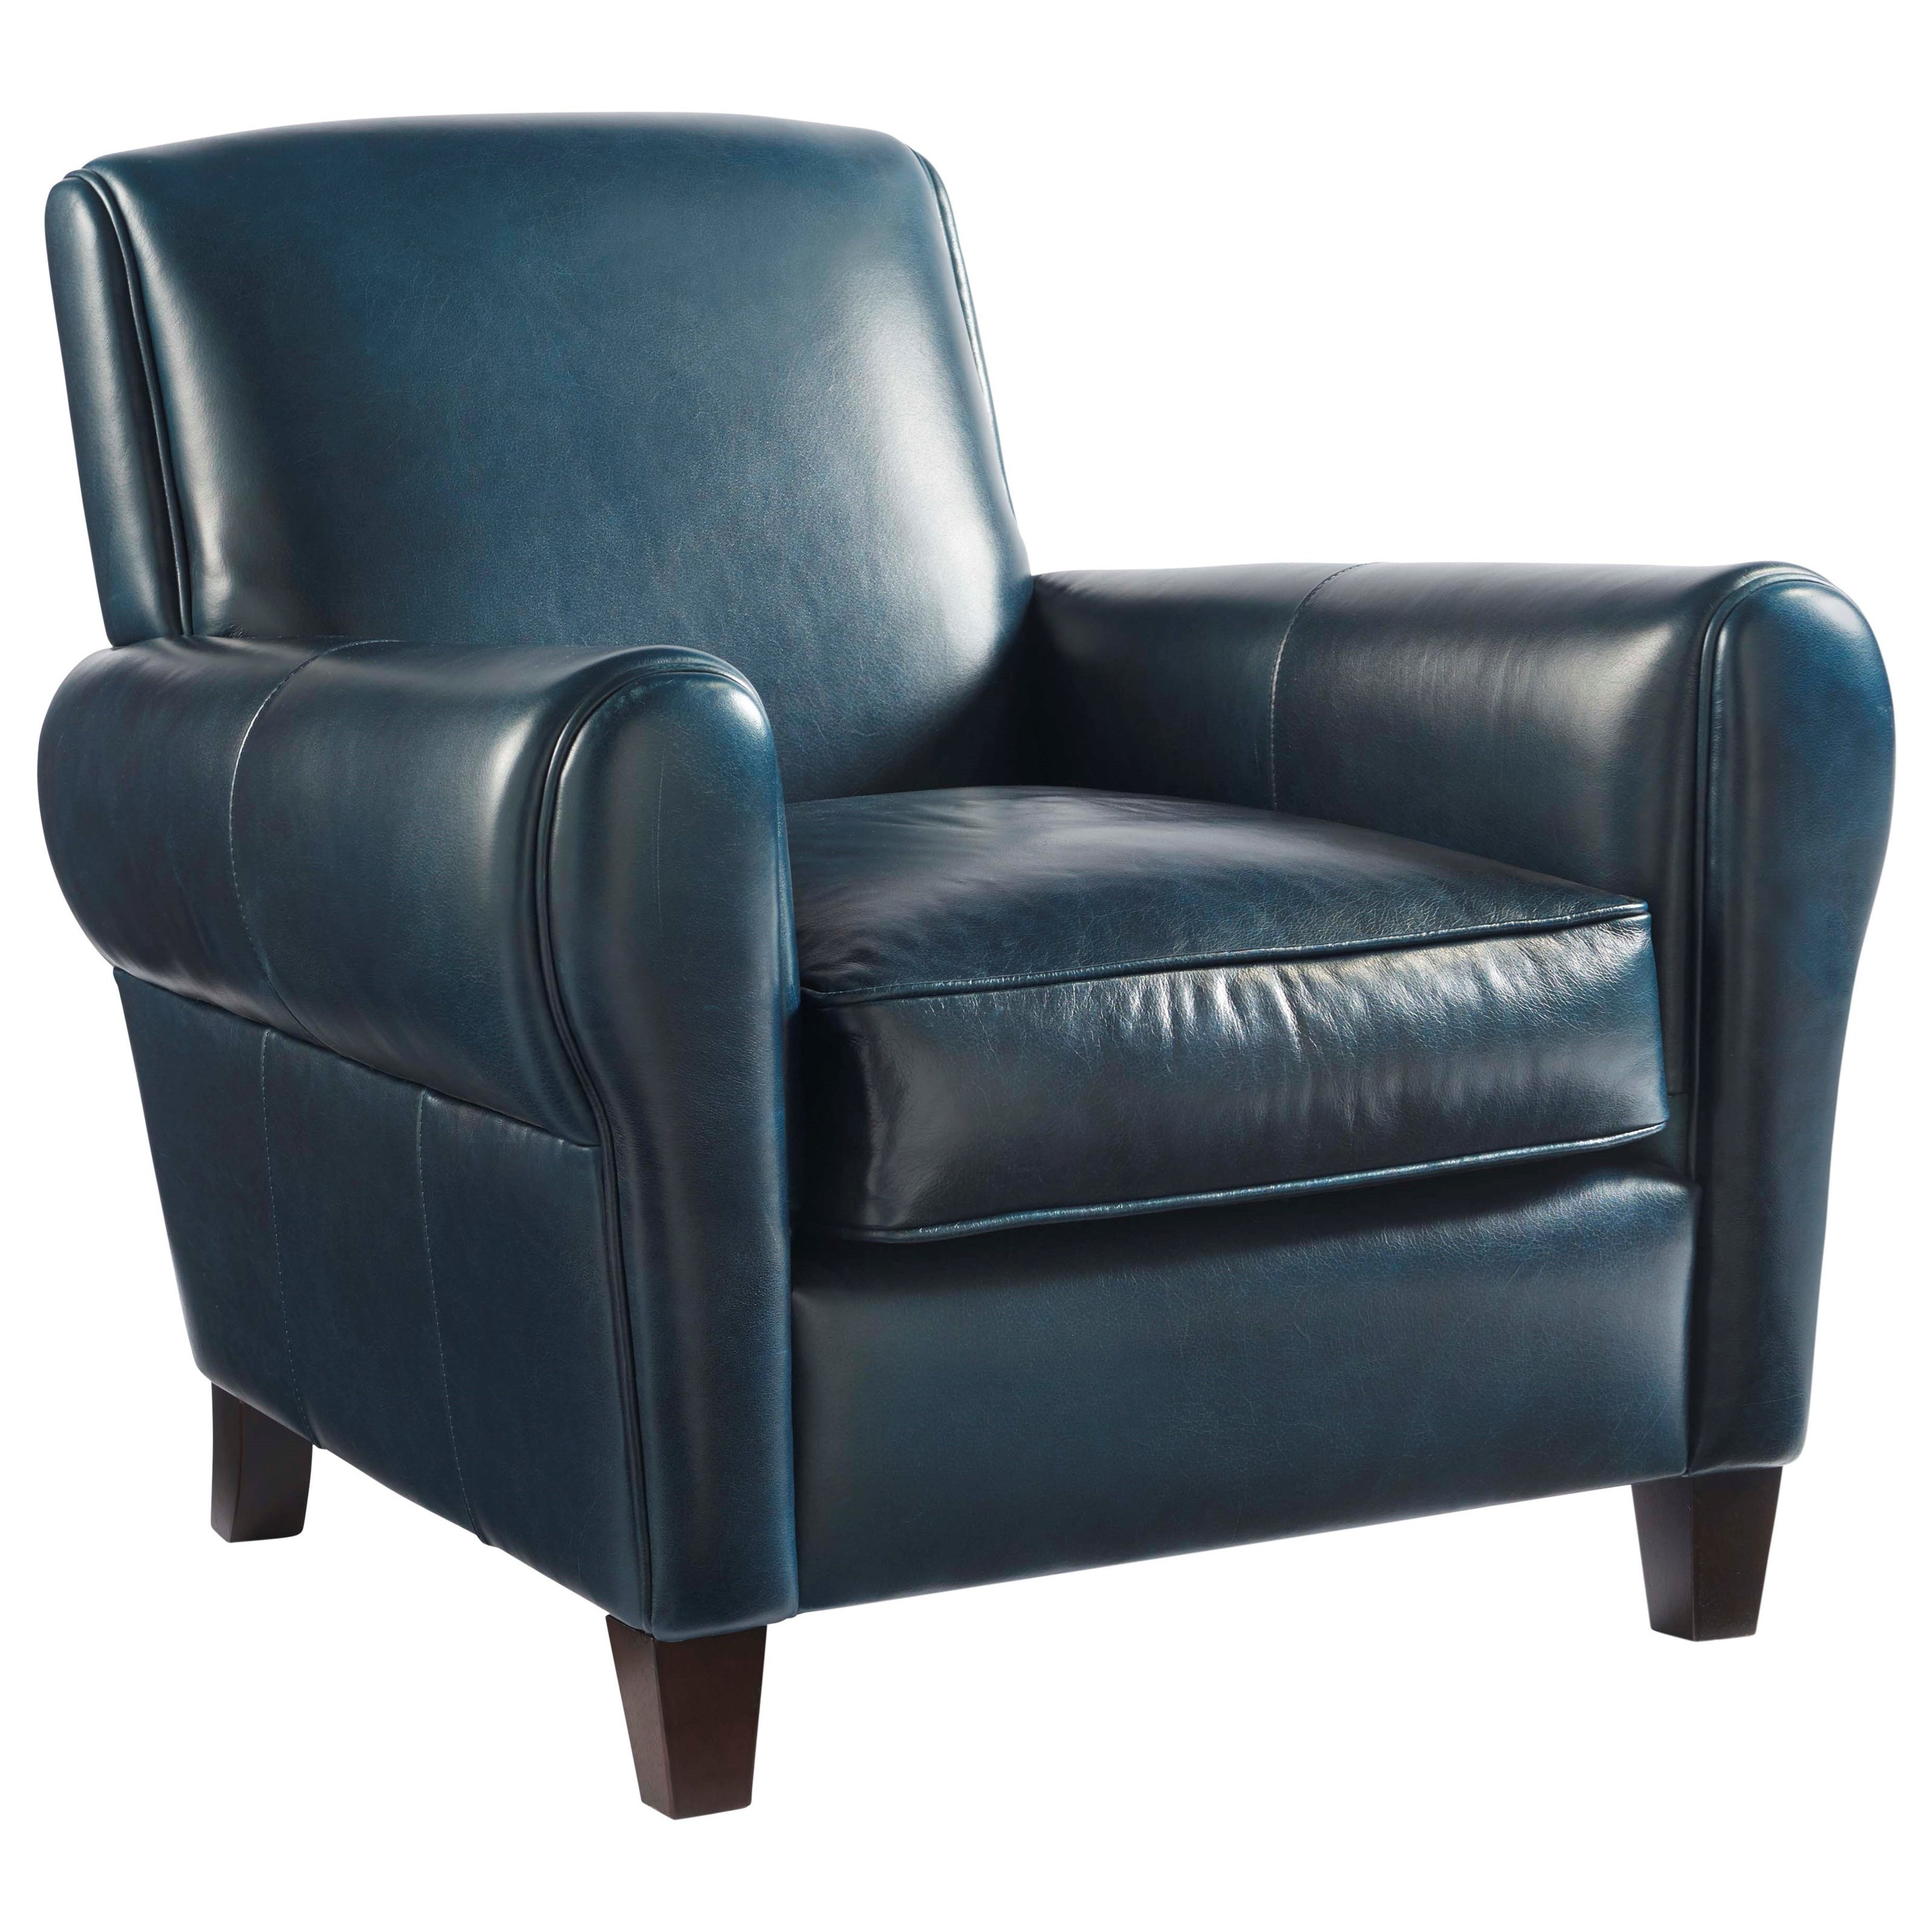 Coastal Living Home - Escape Laguna Accent Chair by Universal at Belfort Furniture